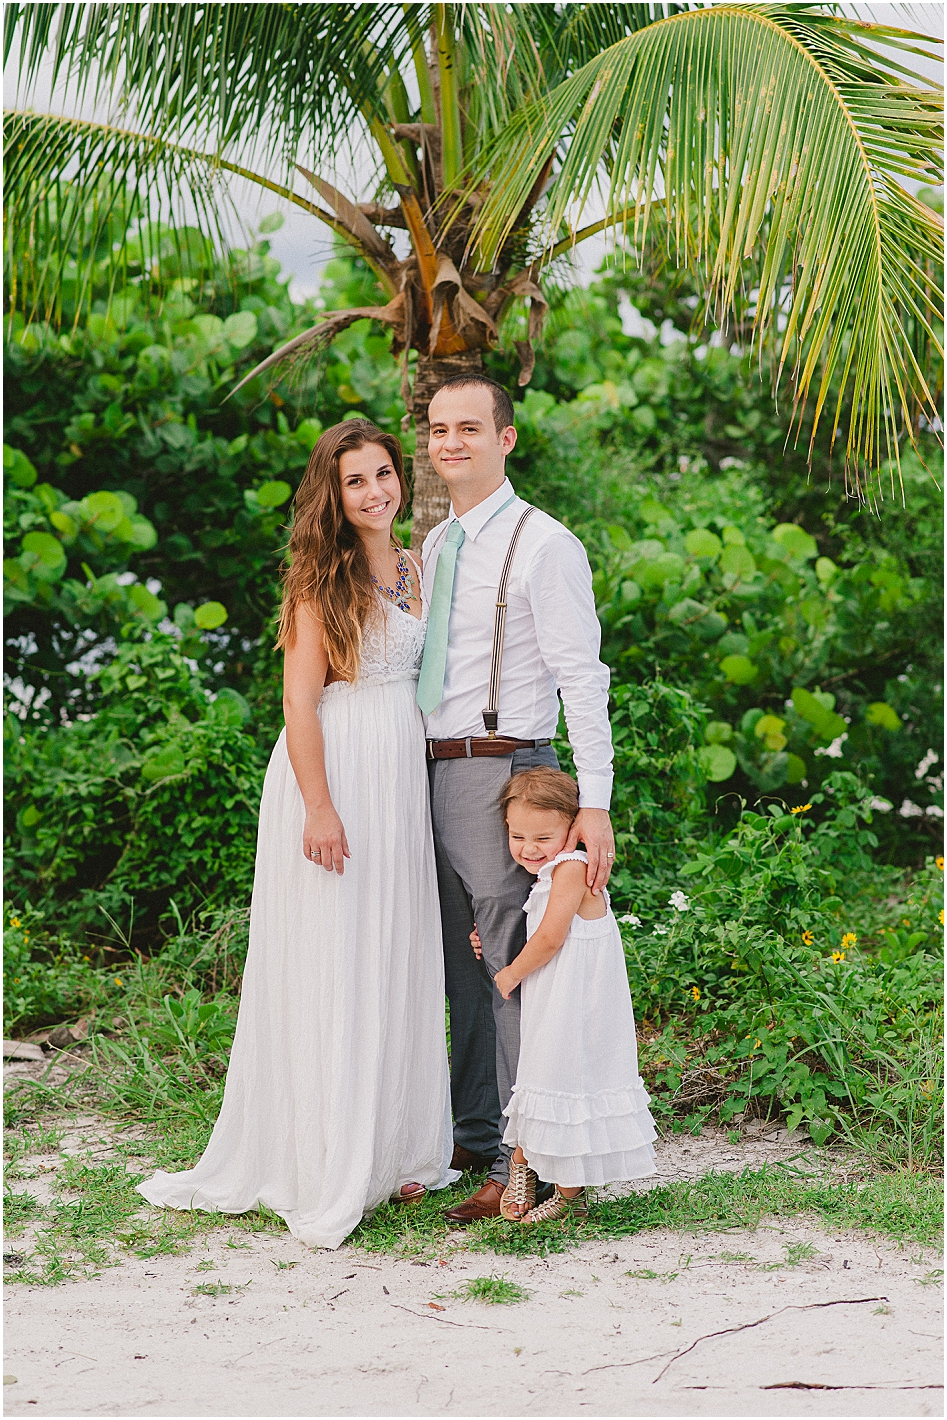 sanibel island lighthouse, sanibel wedding photographer, elopement ceremony, florida wedding photographer, affordable wedding